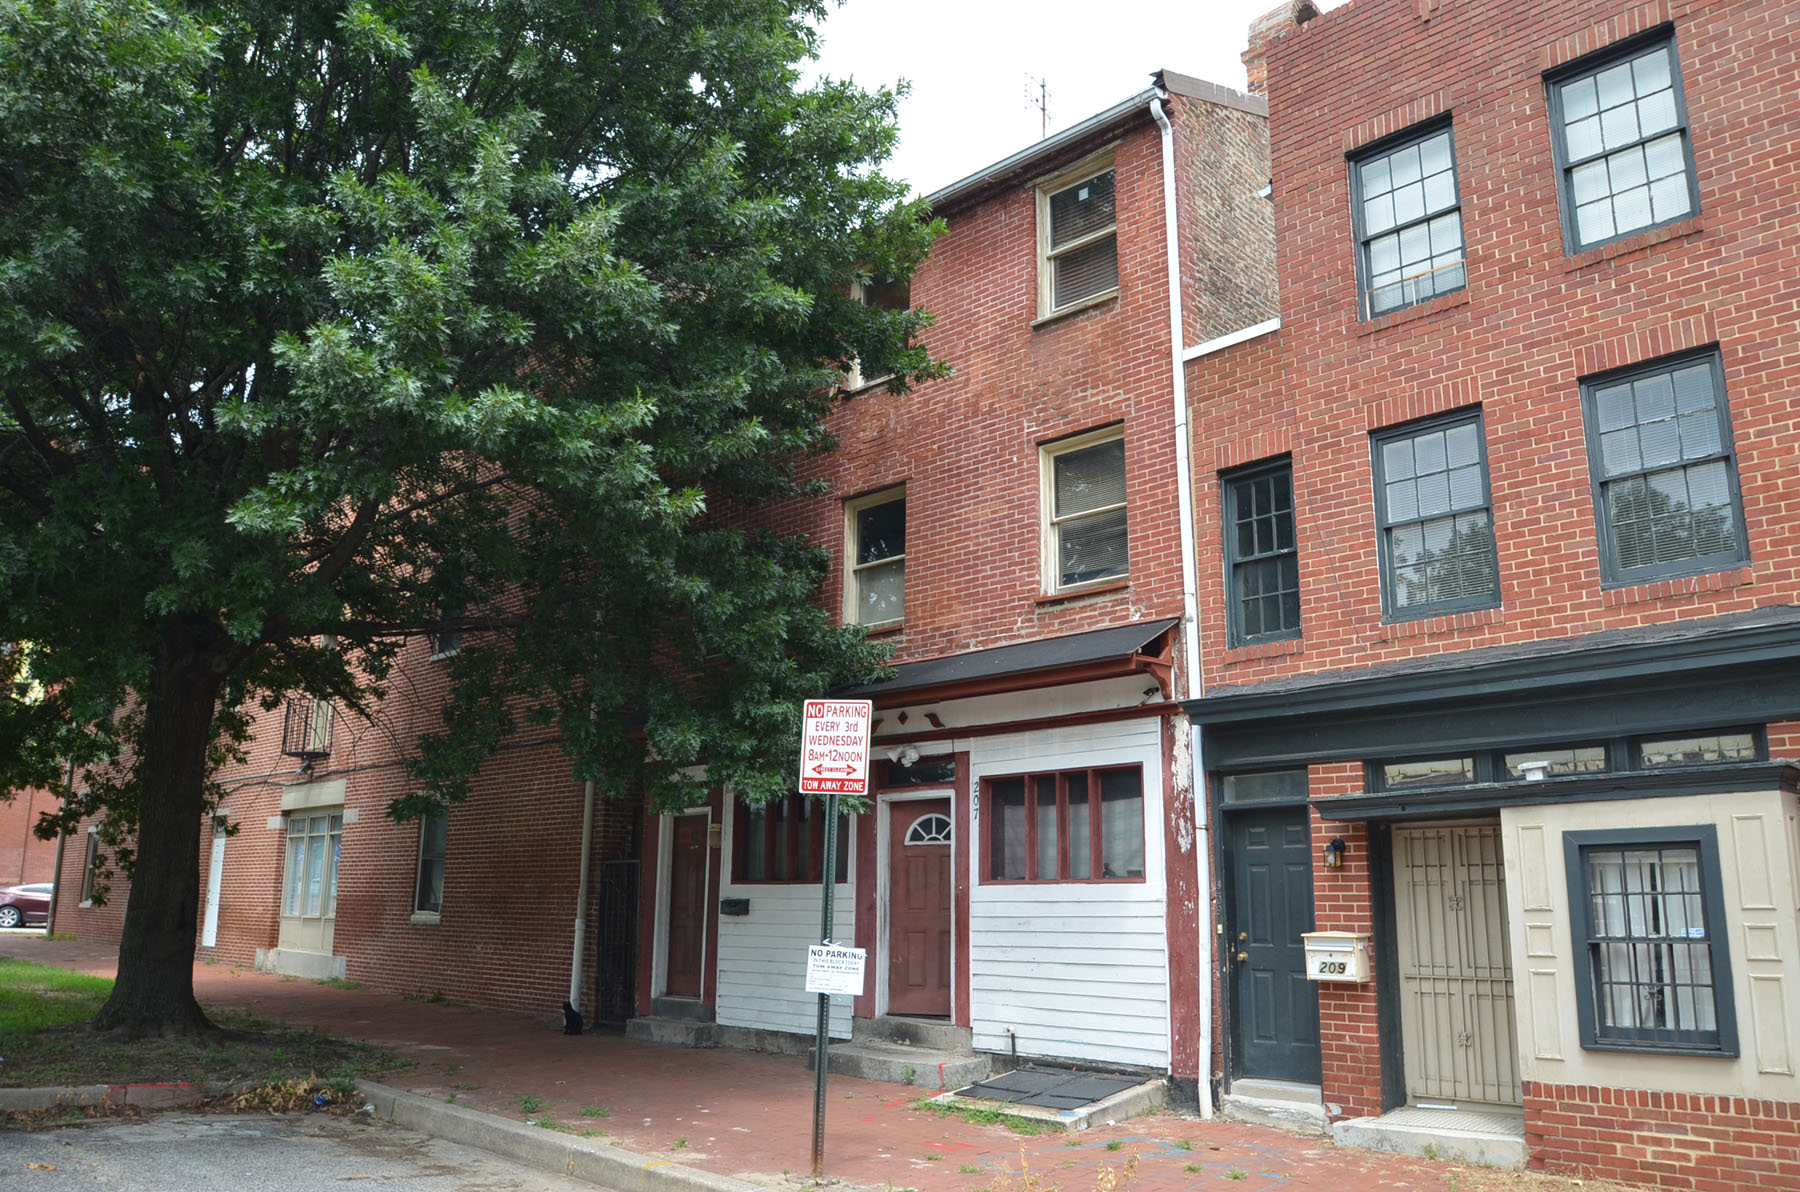 207 South Fremont Avenue: Complete Gut Reno Project in Historic Ridgely's Delight